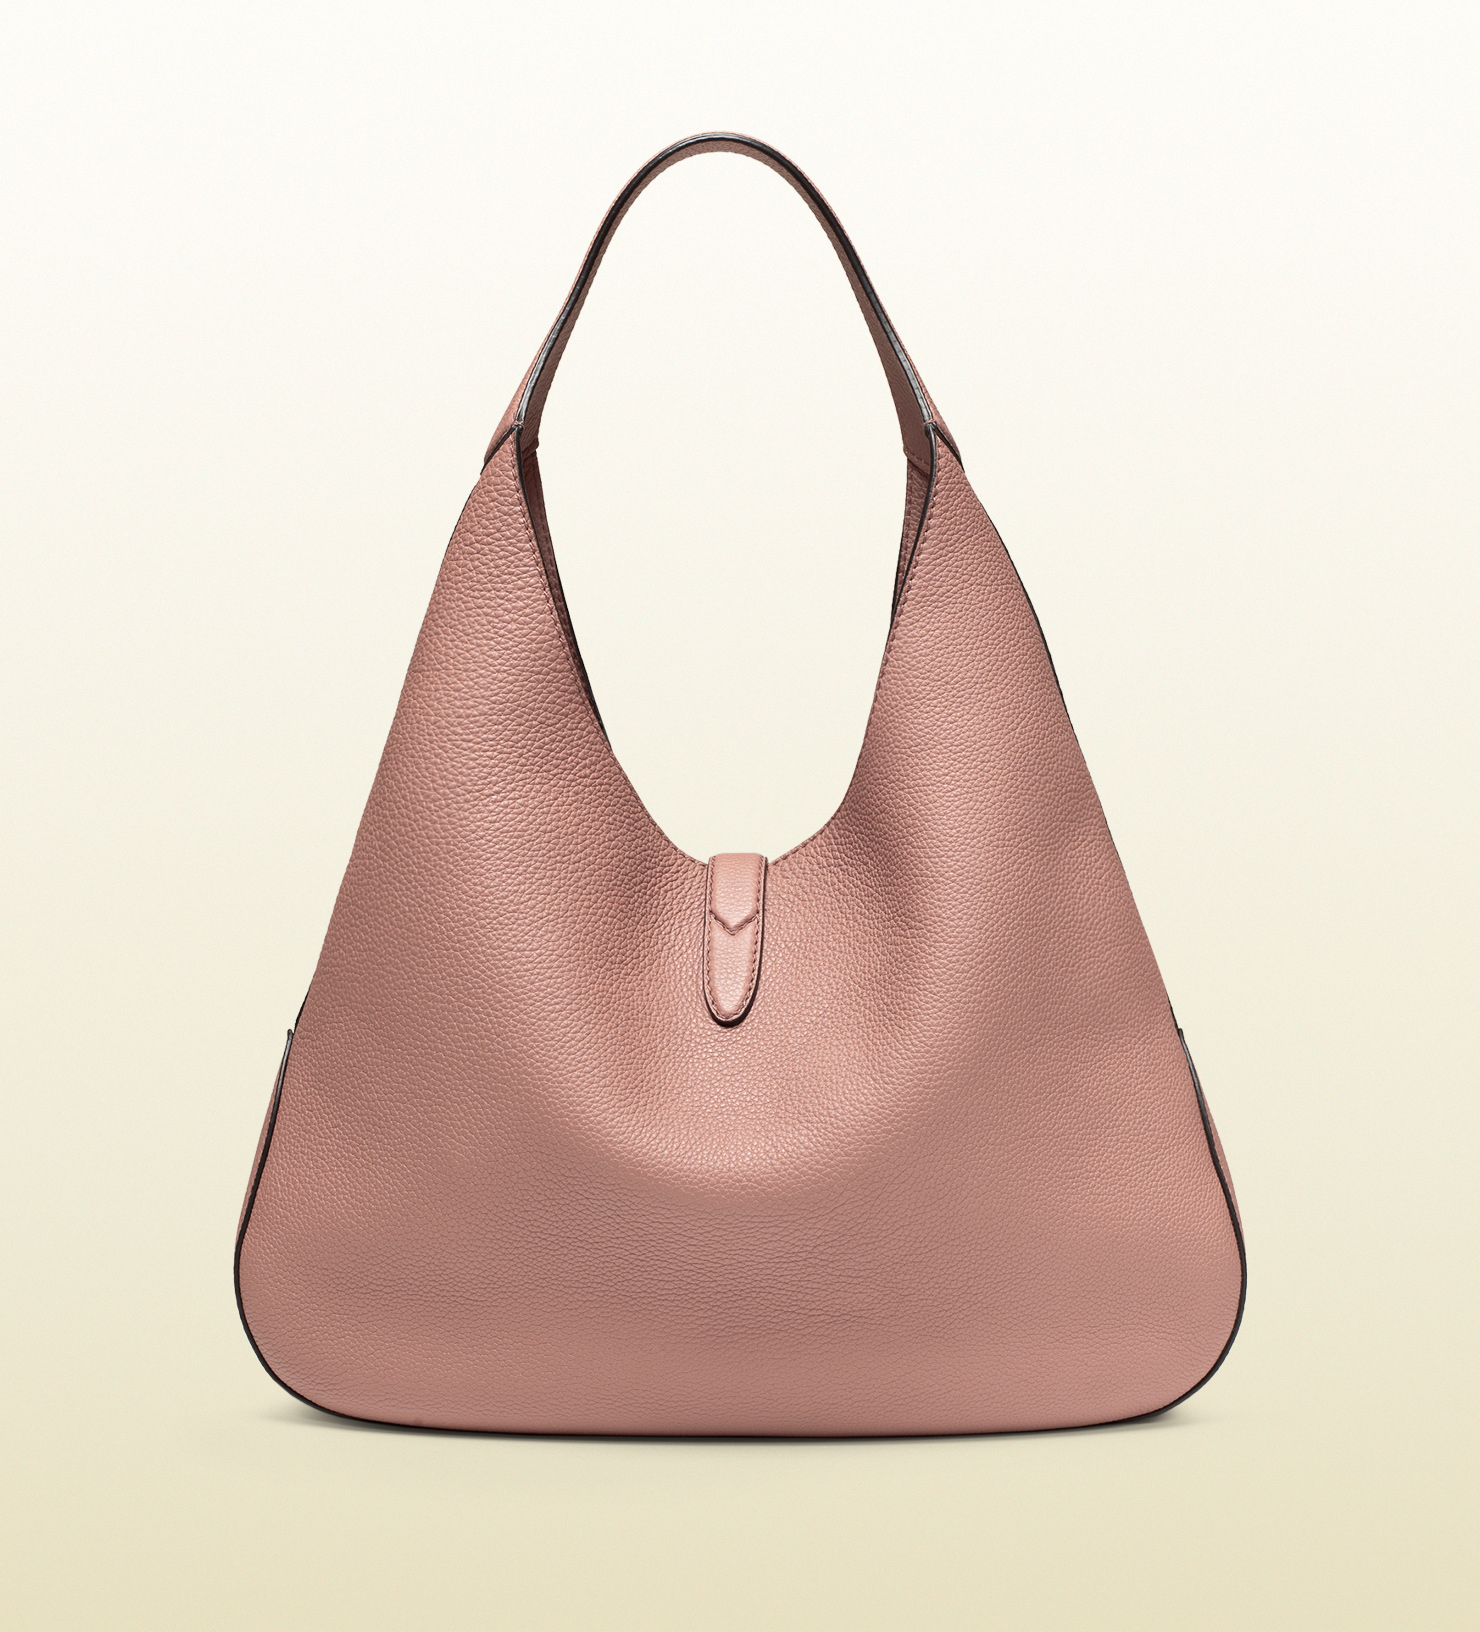 5b00a77a11c9 Gucci Jackie Soft Leather Hobo in Pink - Lyst